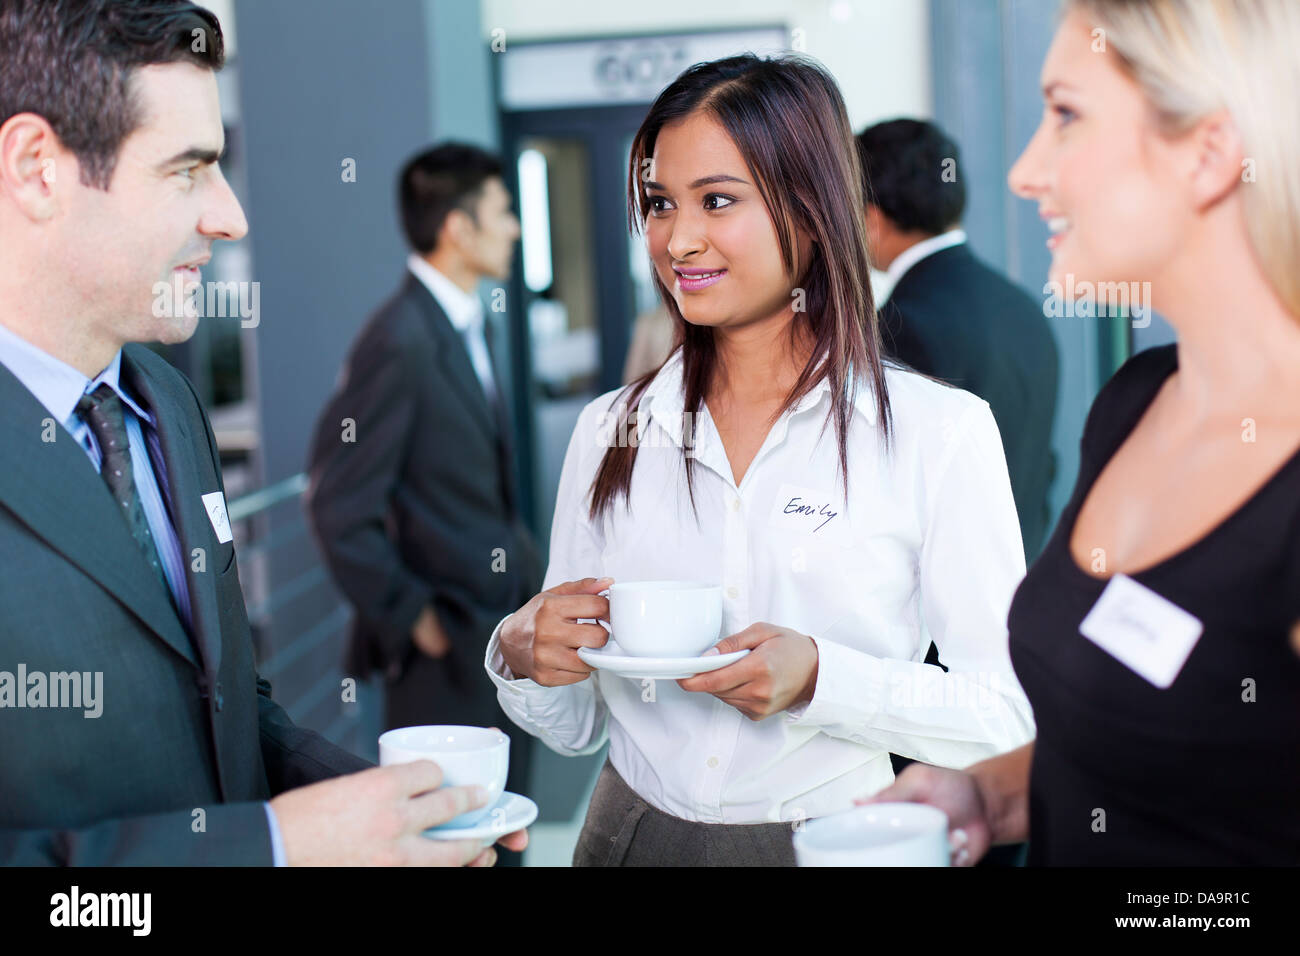 businesspeople interacting during coffee break at business conference - Stock Image